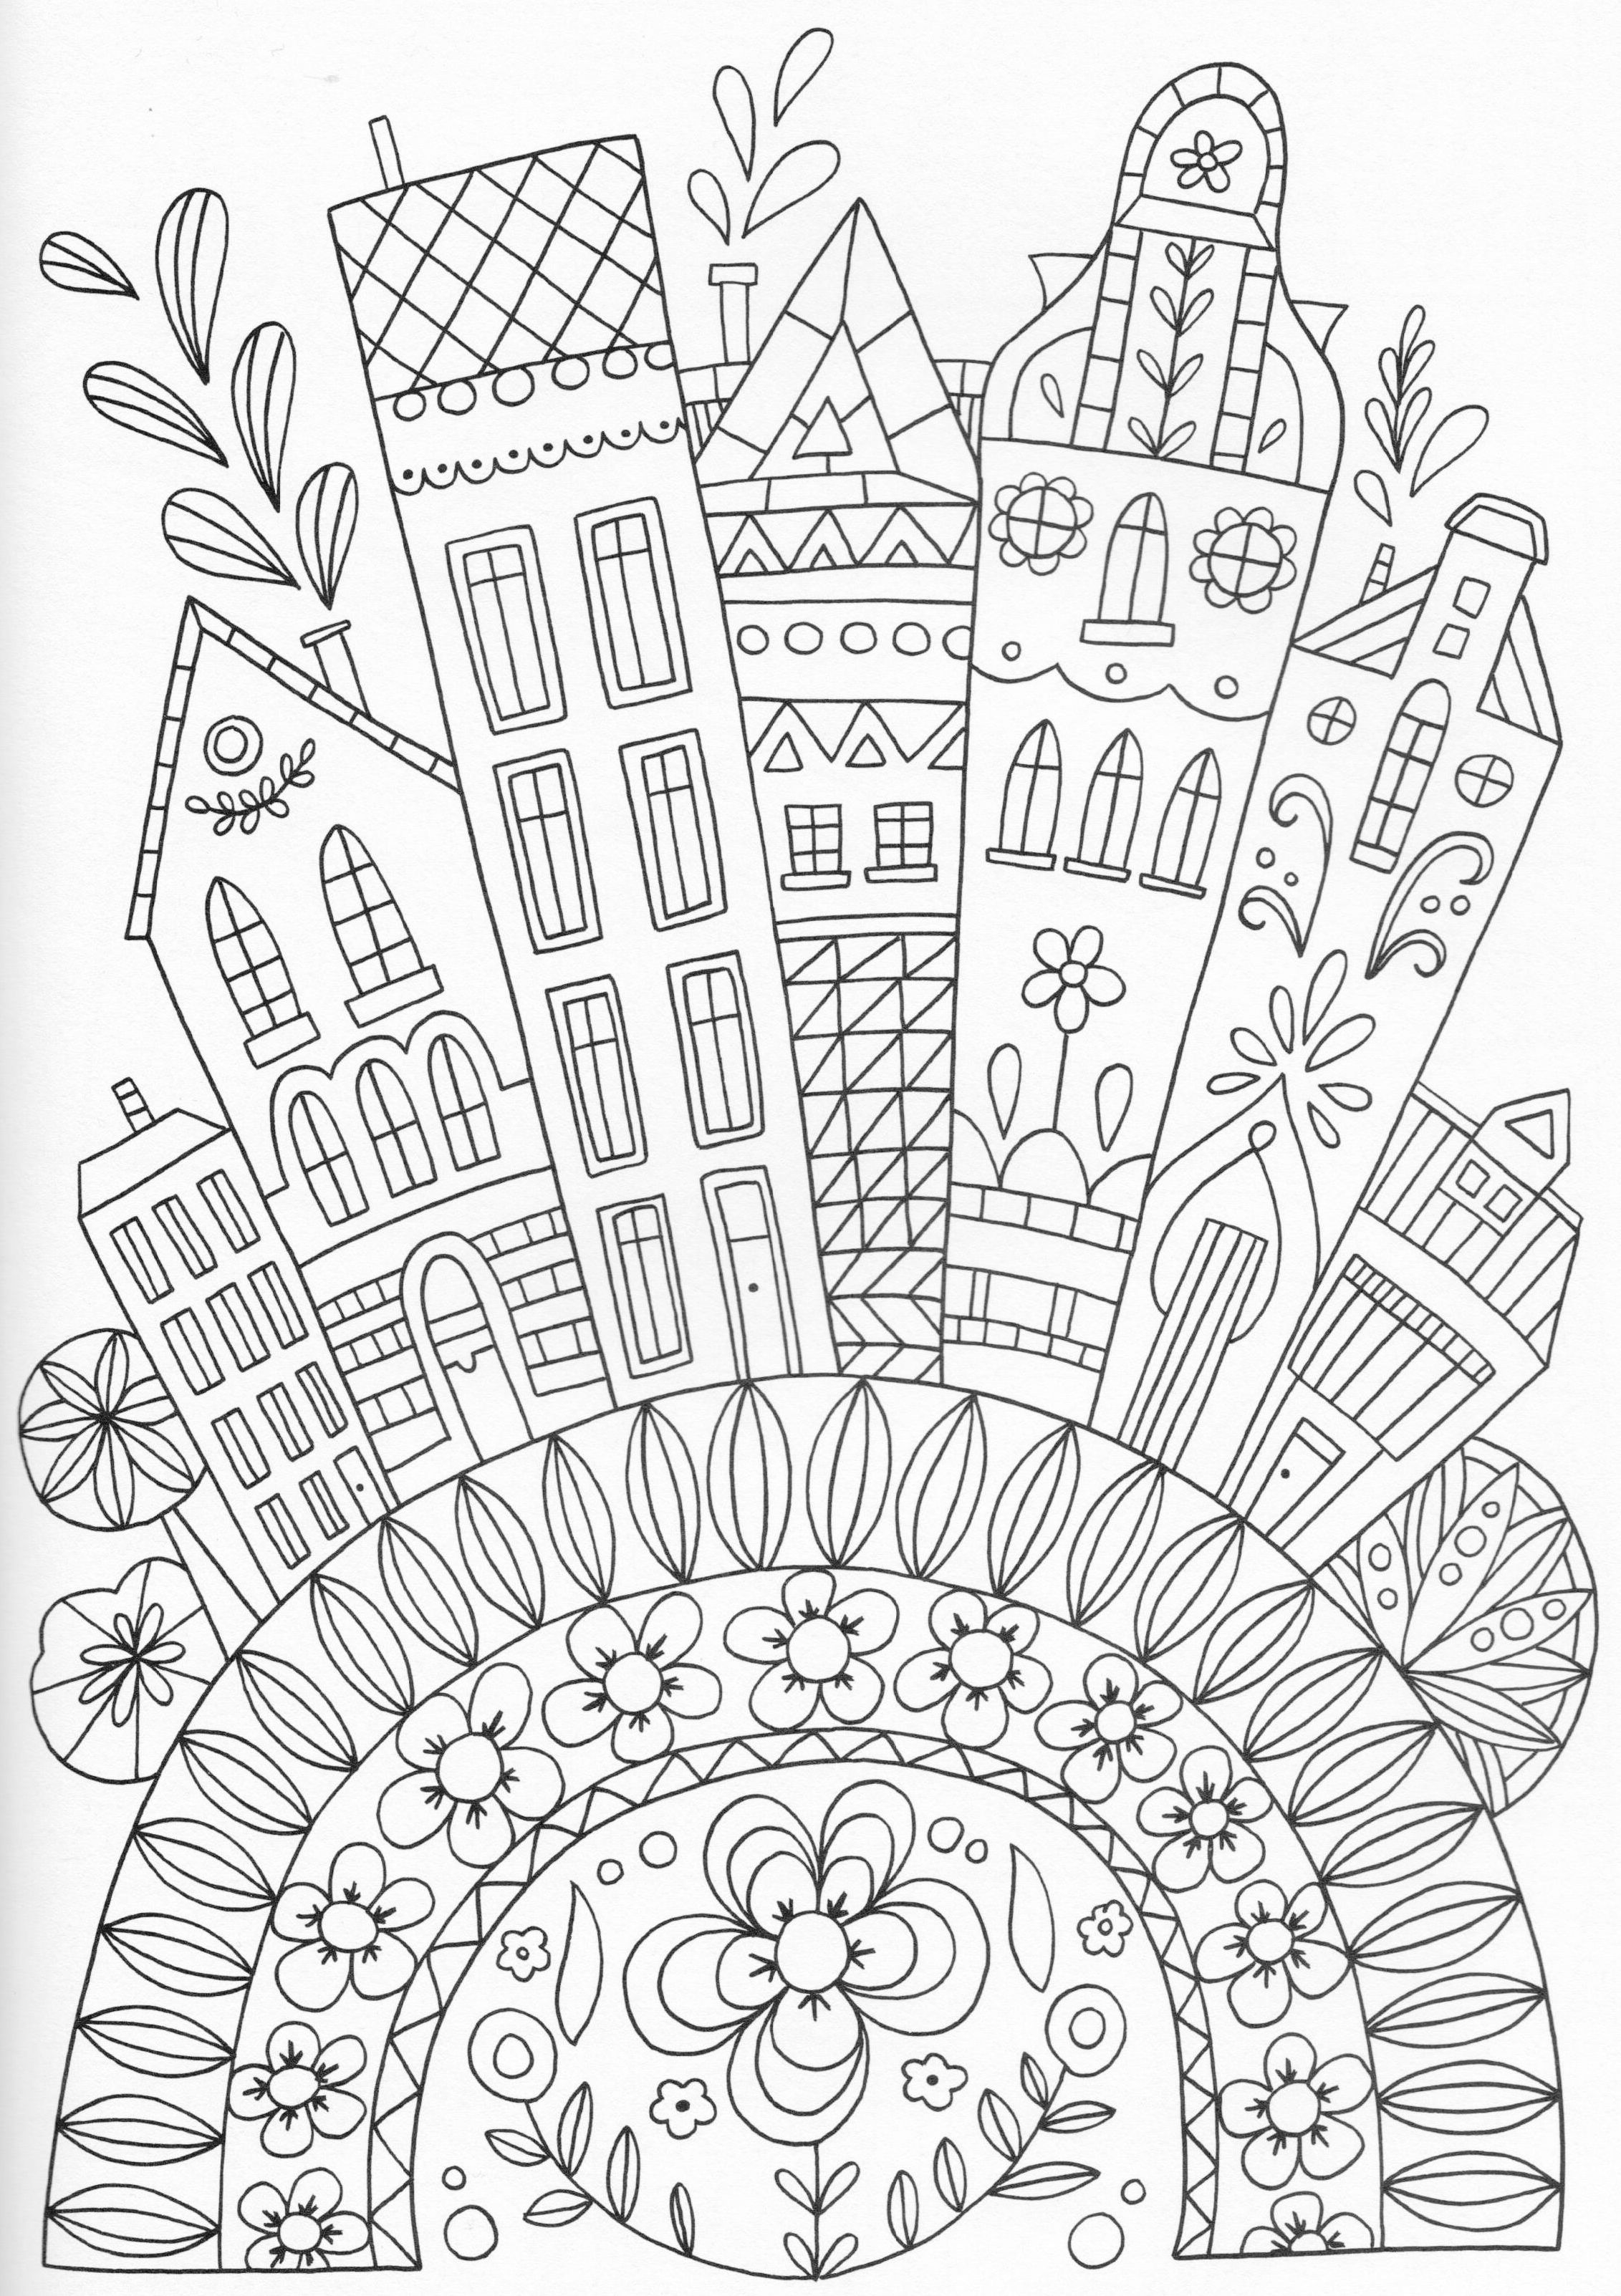 Free Coloring Pages For Adults Pinterest : Scandinavian Coloring Book Pg 32 Color pages, Stencils, Templates, Patterns Pinterest ...